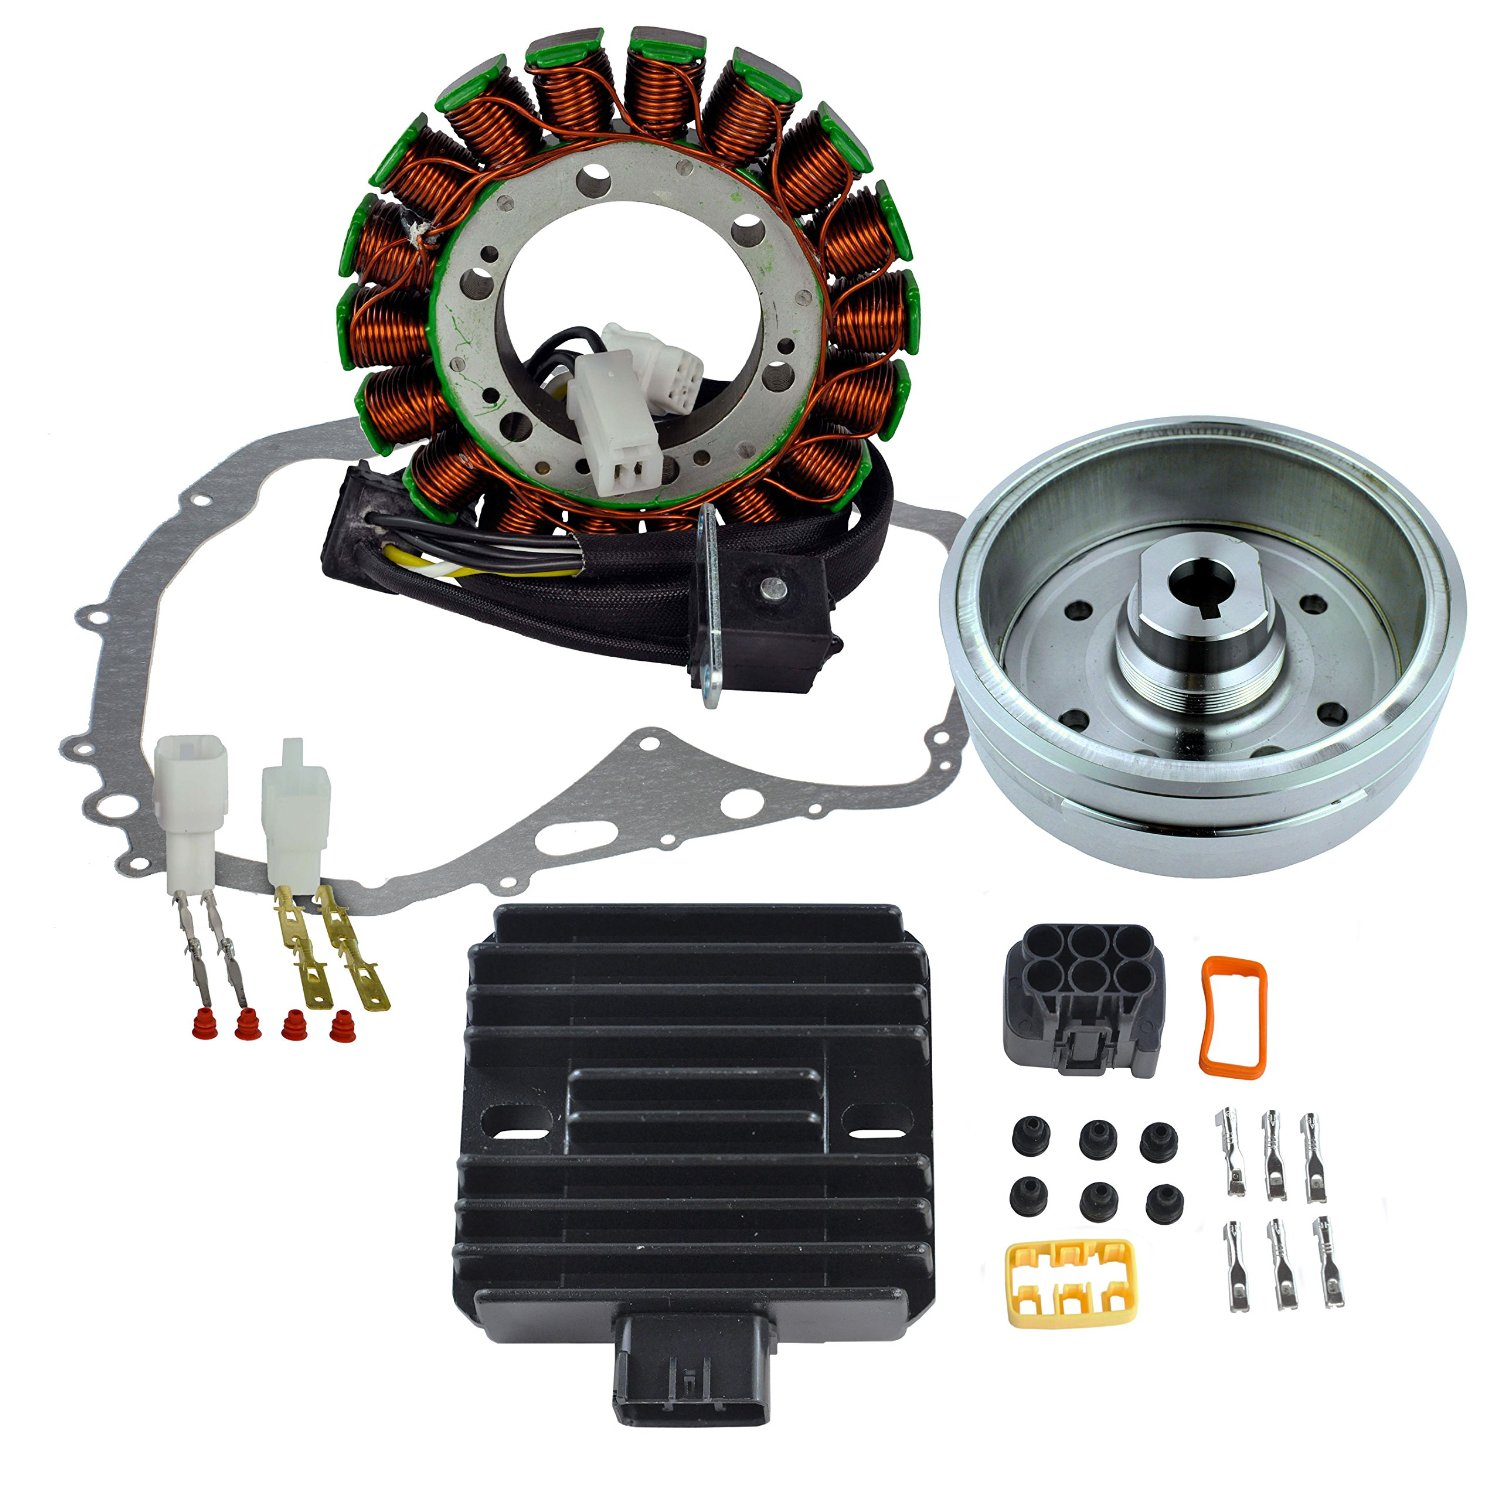 Kit Stator + Improved Magneto Flywheel + Regulator Rectifier + Crankcase Cover Gasket For Suzuki LTF 400 Eiger 2002 2003 2004 2005 2006 2007